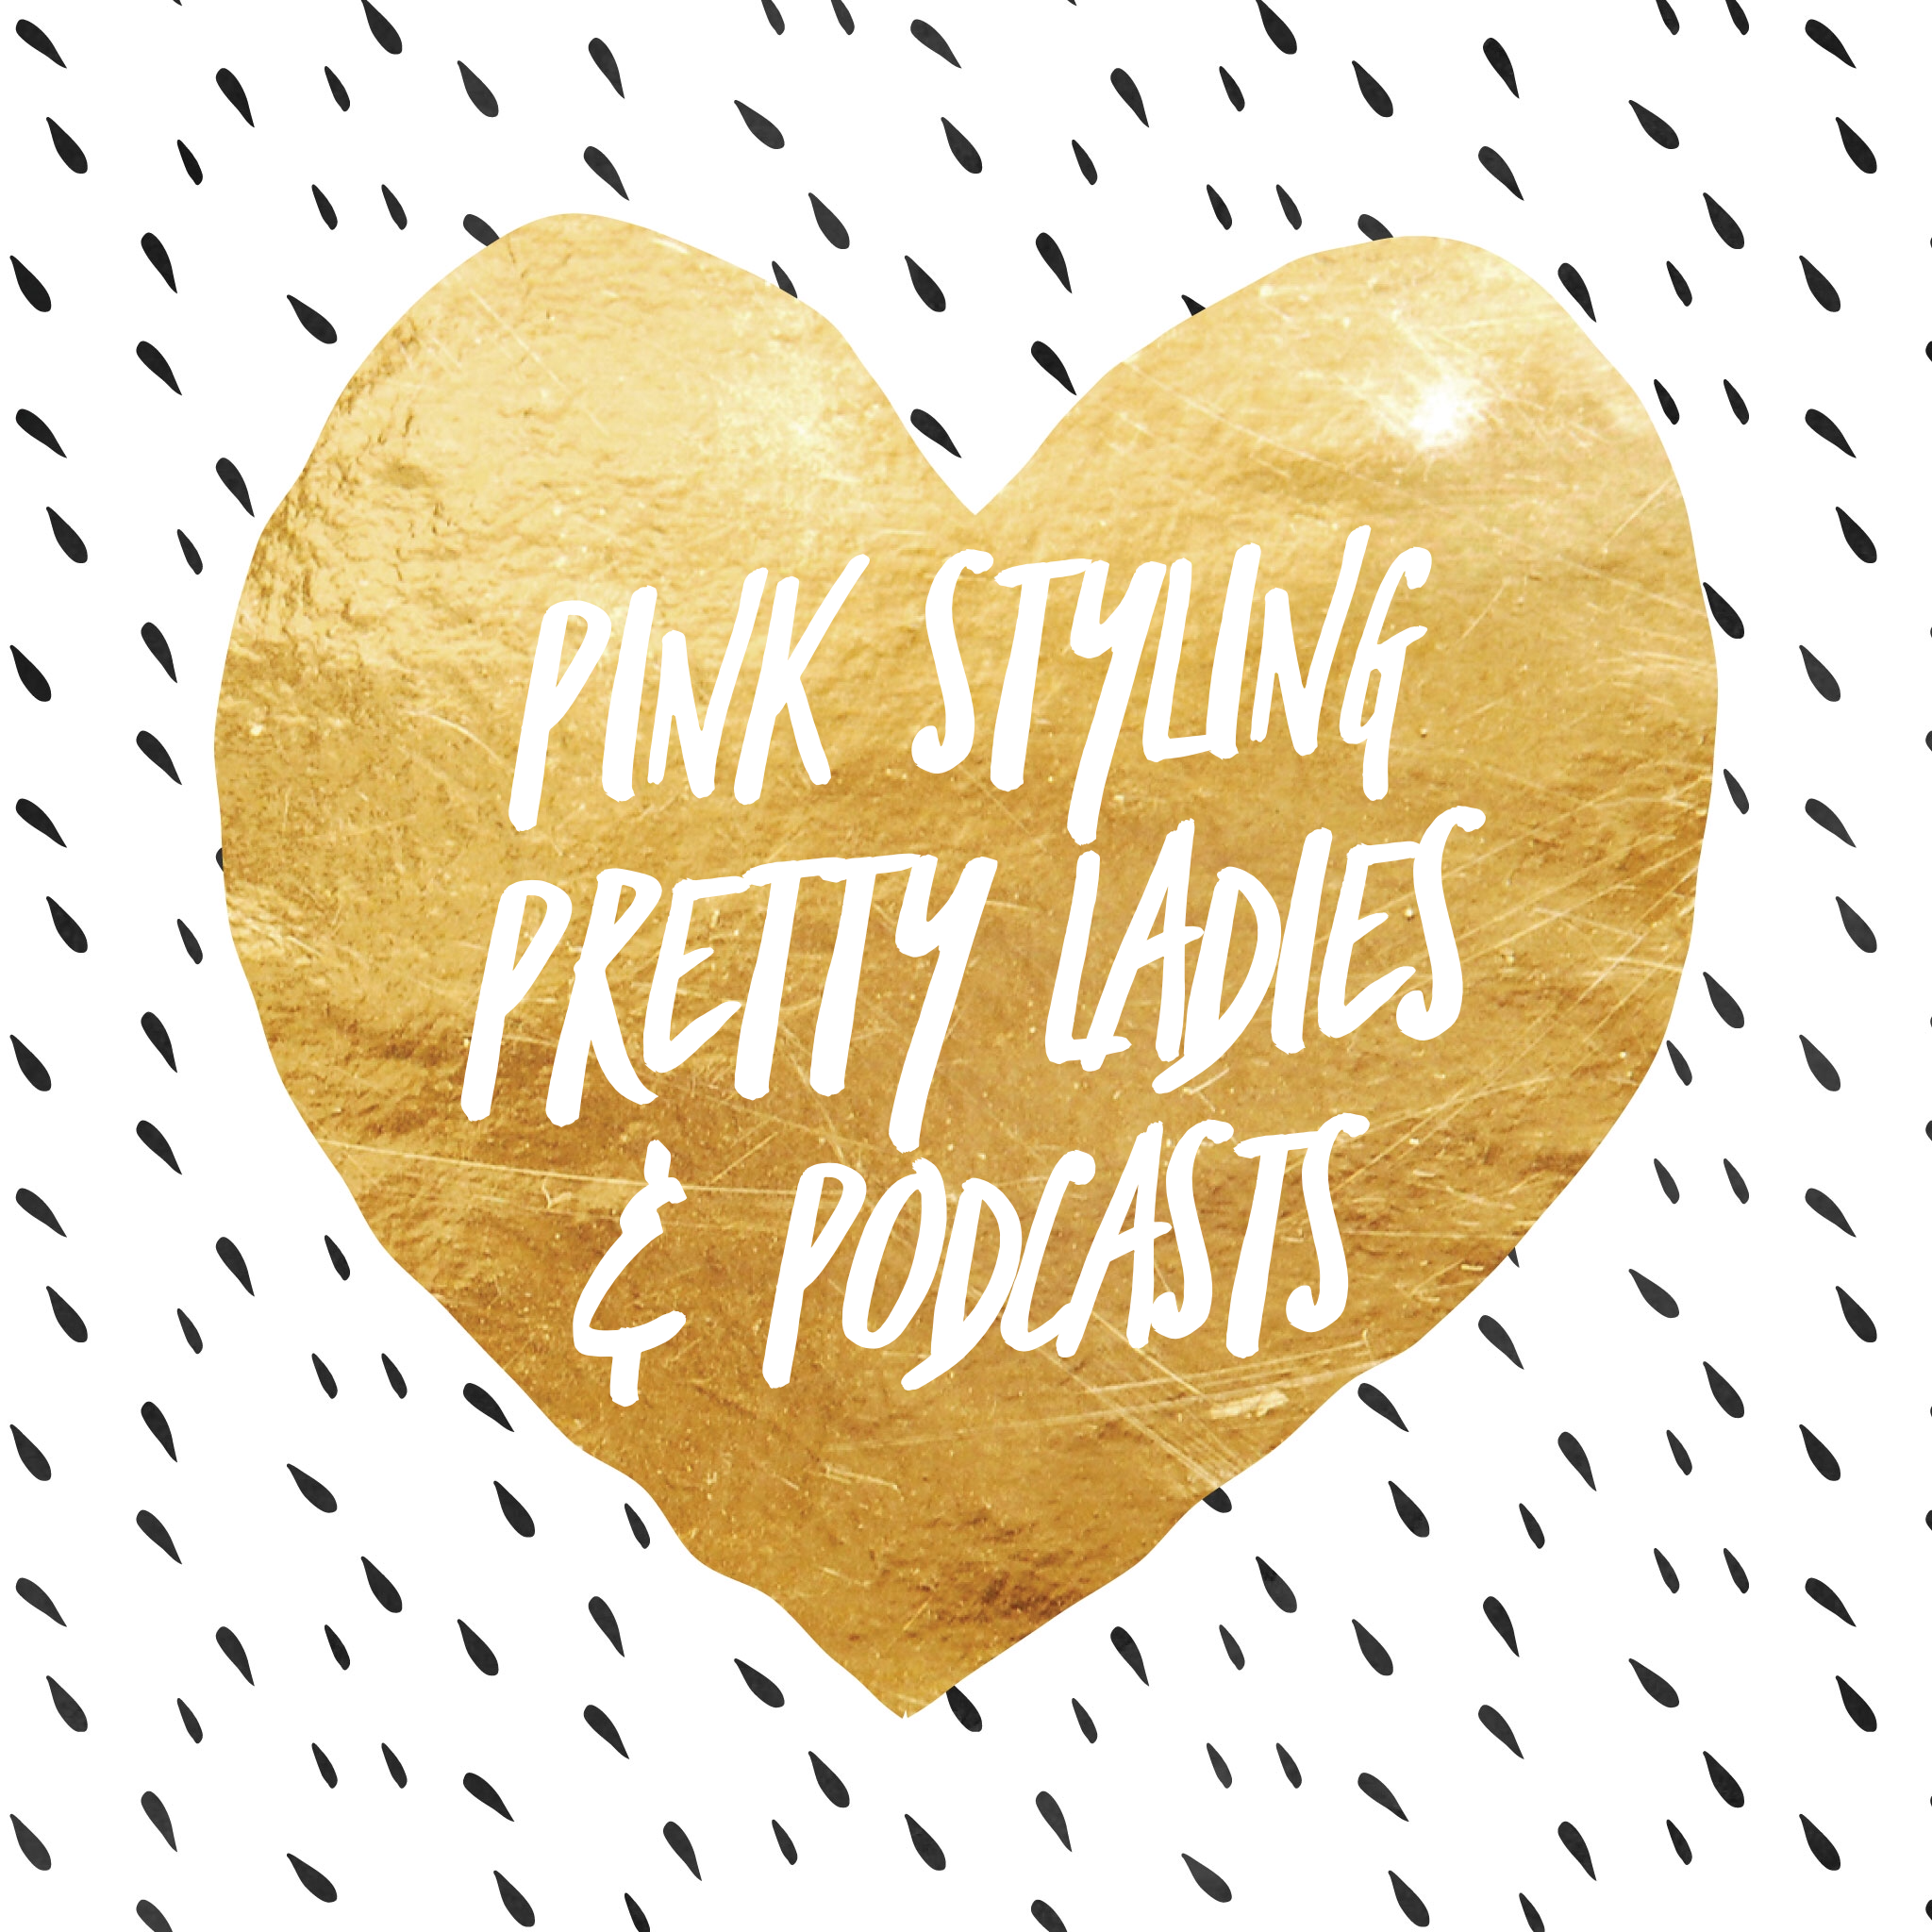 Friday Faves: Pink styling, pretty ladies and podcasts